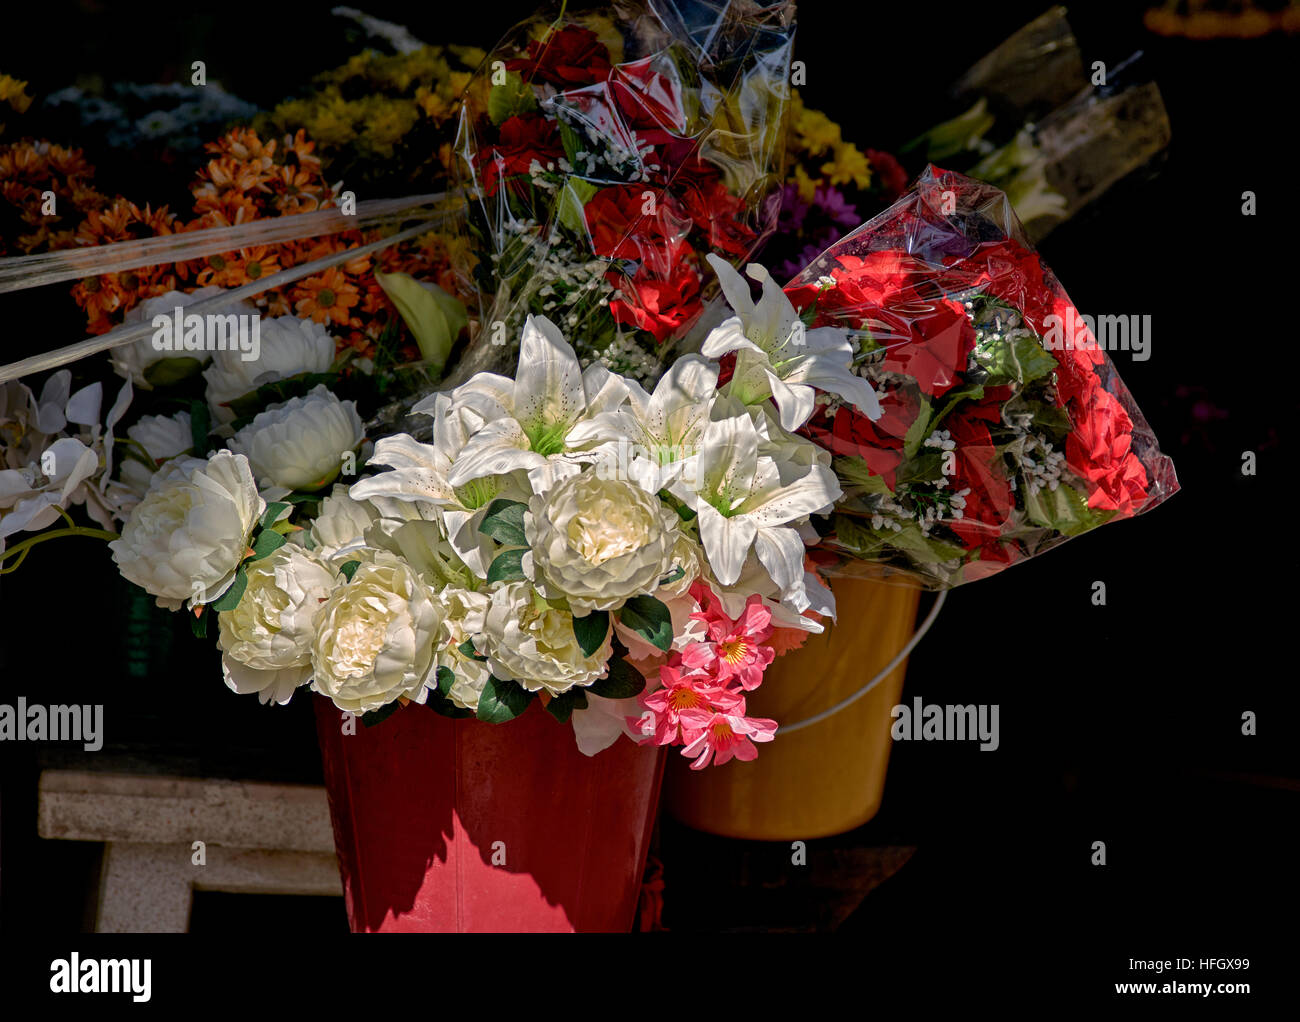 Flowers For Sale Artificial Stock Photos Flowers For Sale